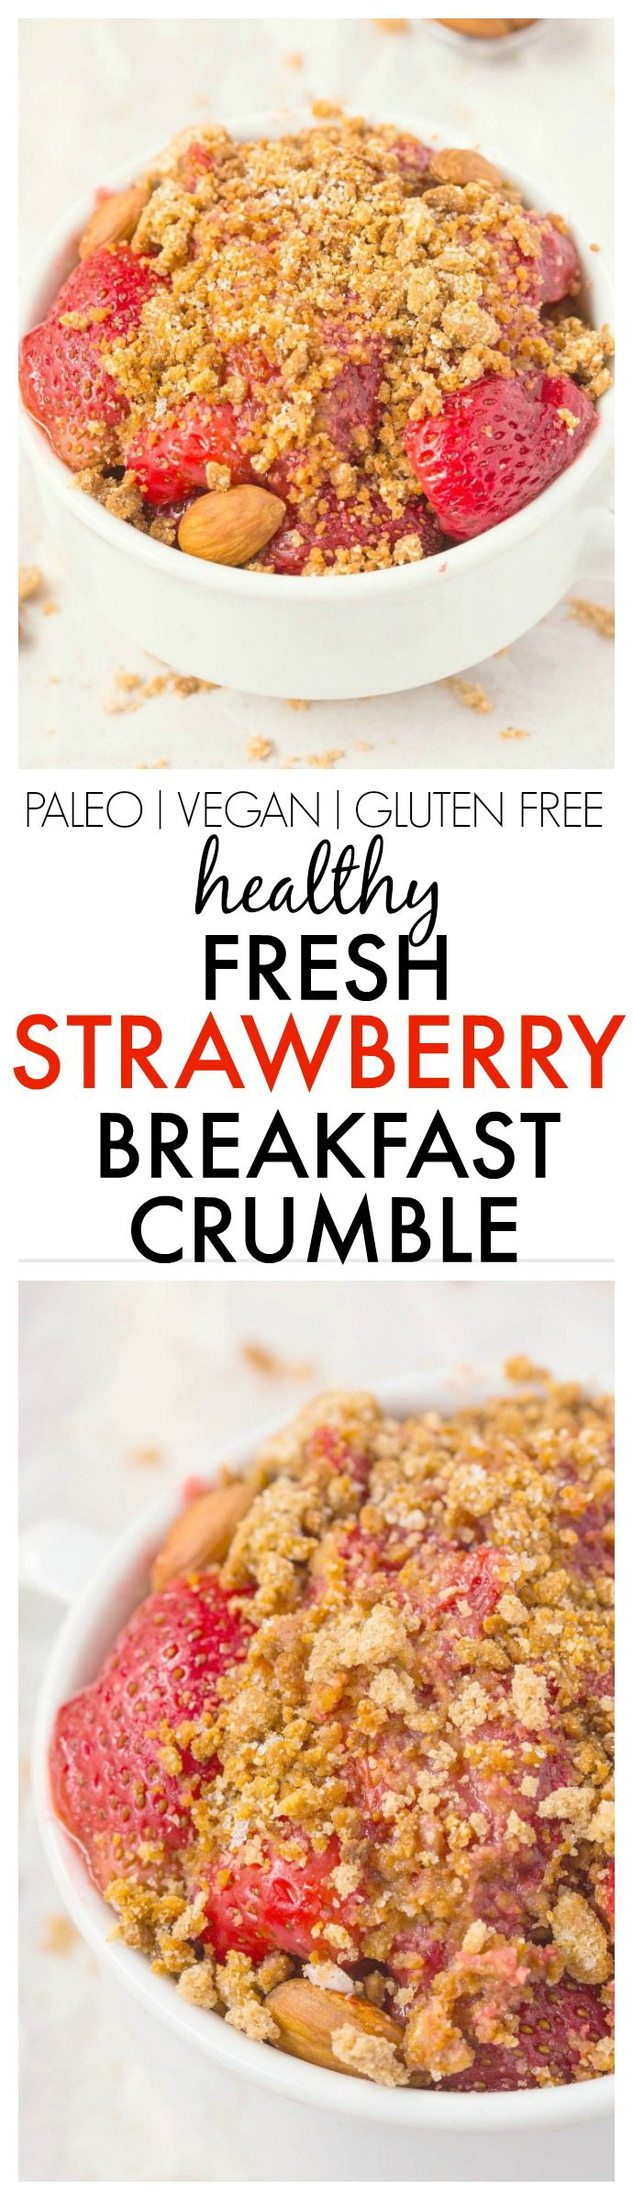 Healthy Fresh Strawberry Breakfast Crumble which can totally pass as dessert too- NO butter, oil, grains, white flour or sugar yet 100% delicious- SO EASY! {vegan, gluten free, paleo recipe}- thebigmansworld.com